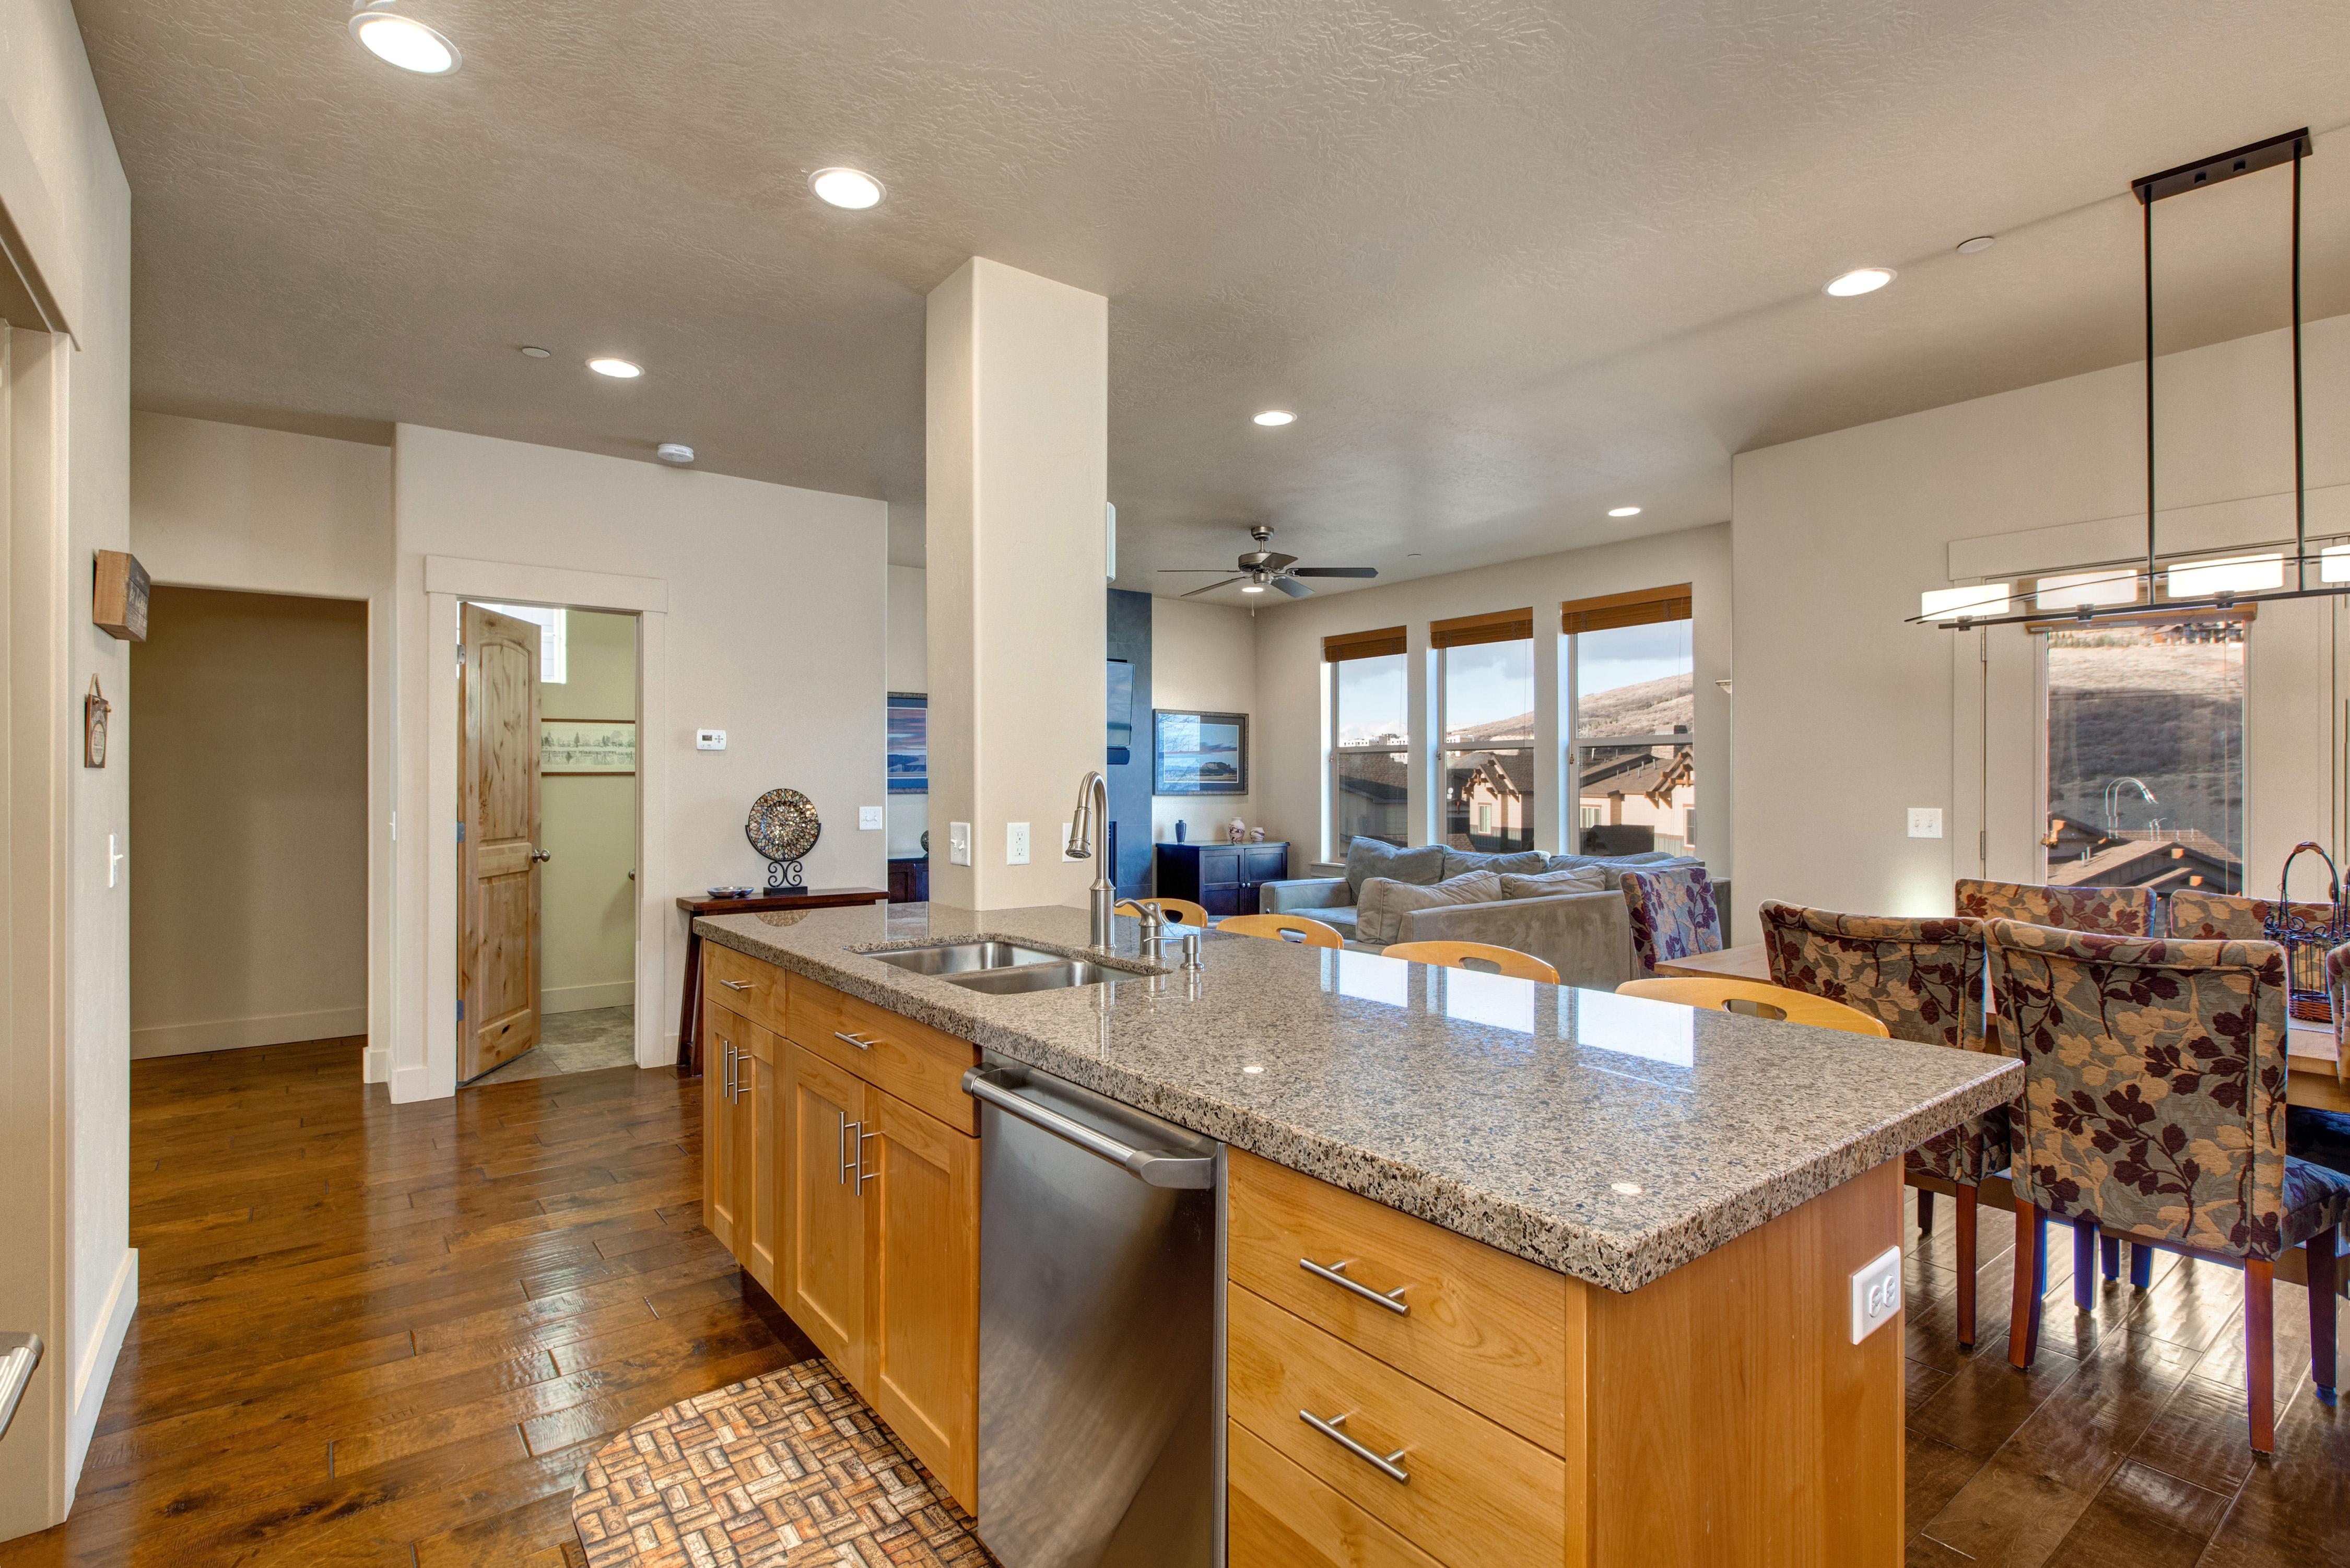 Property Image 2 - Bright and Airy Jordanelle Townhome with Private Hot Tub